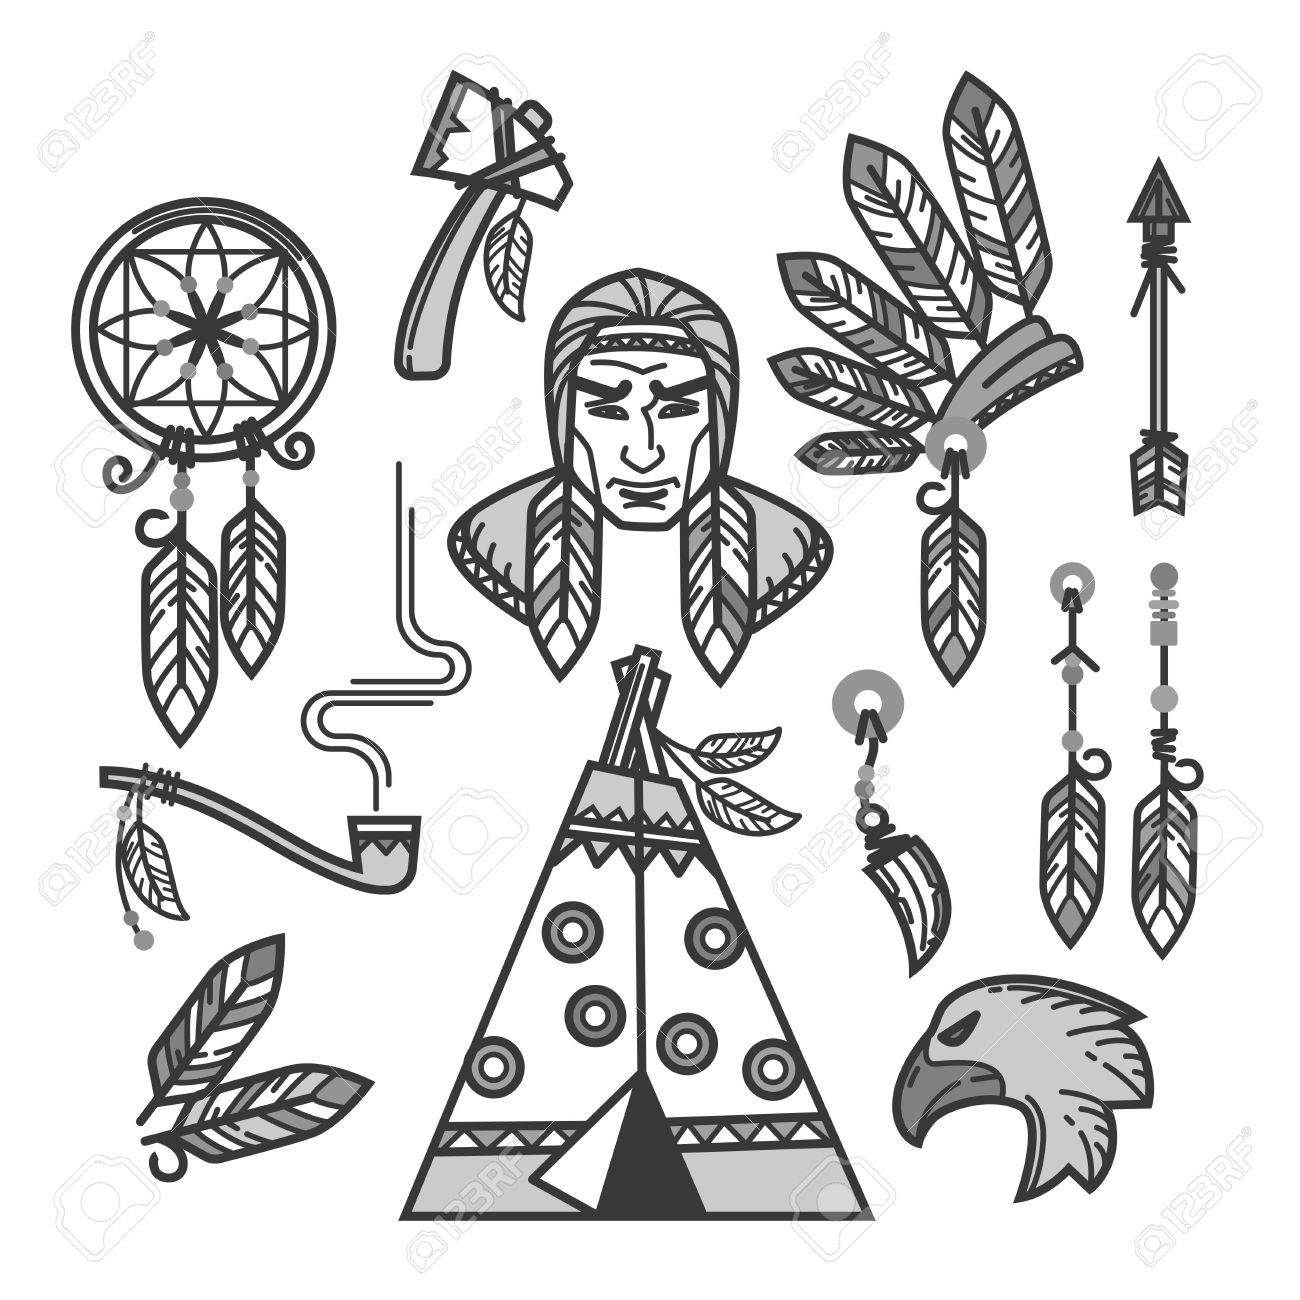 Native American Indians traditional culture or life household